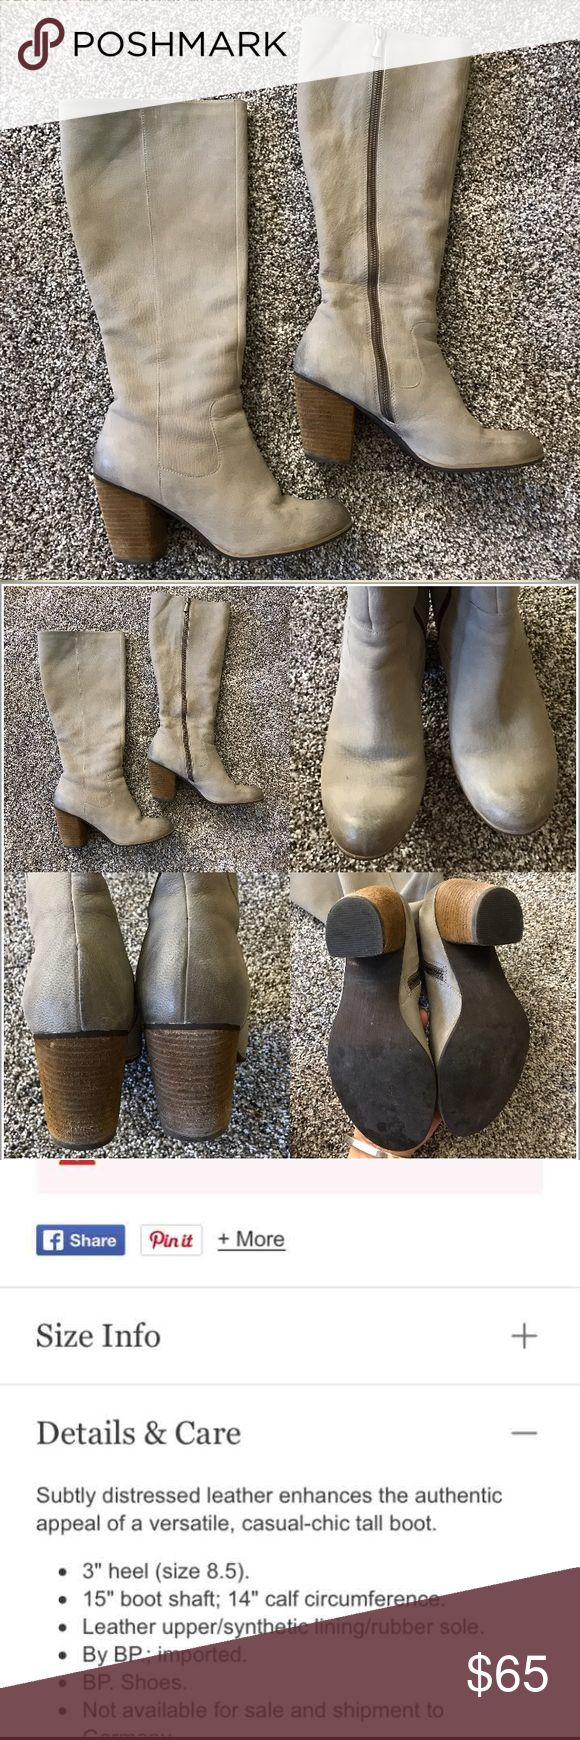 🌷Nordstrom boots (genuine leather) Knee high boots with a chunky heel. Intentionally distressed coloring. These are a greyish-taupe color. Size 8.5 but I typically wear a 7.5-8 and they fit nicely with socks. They end right below the knee. I'm 5'5. Normal wear, no major flaws...see pics. bp Shoes Heeled Boots